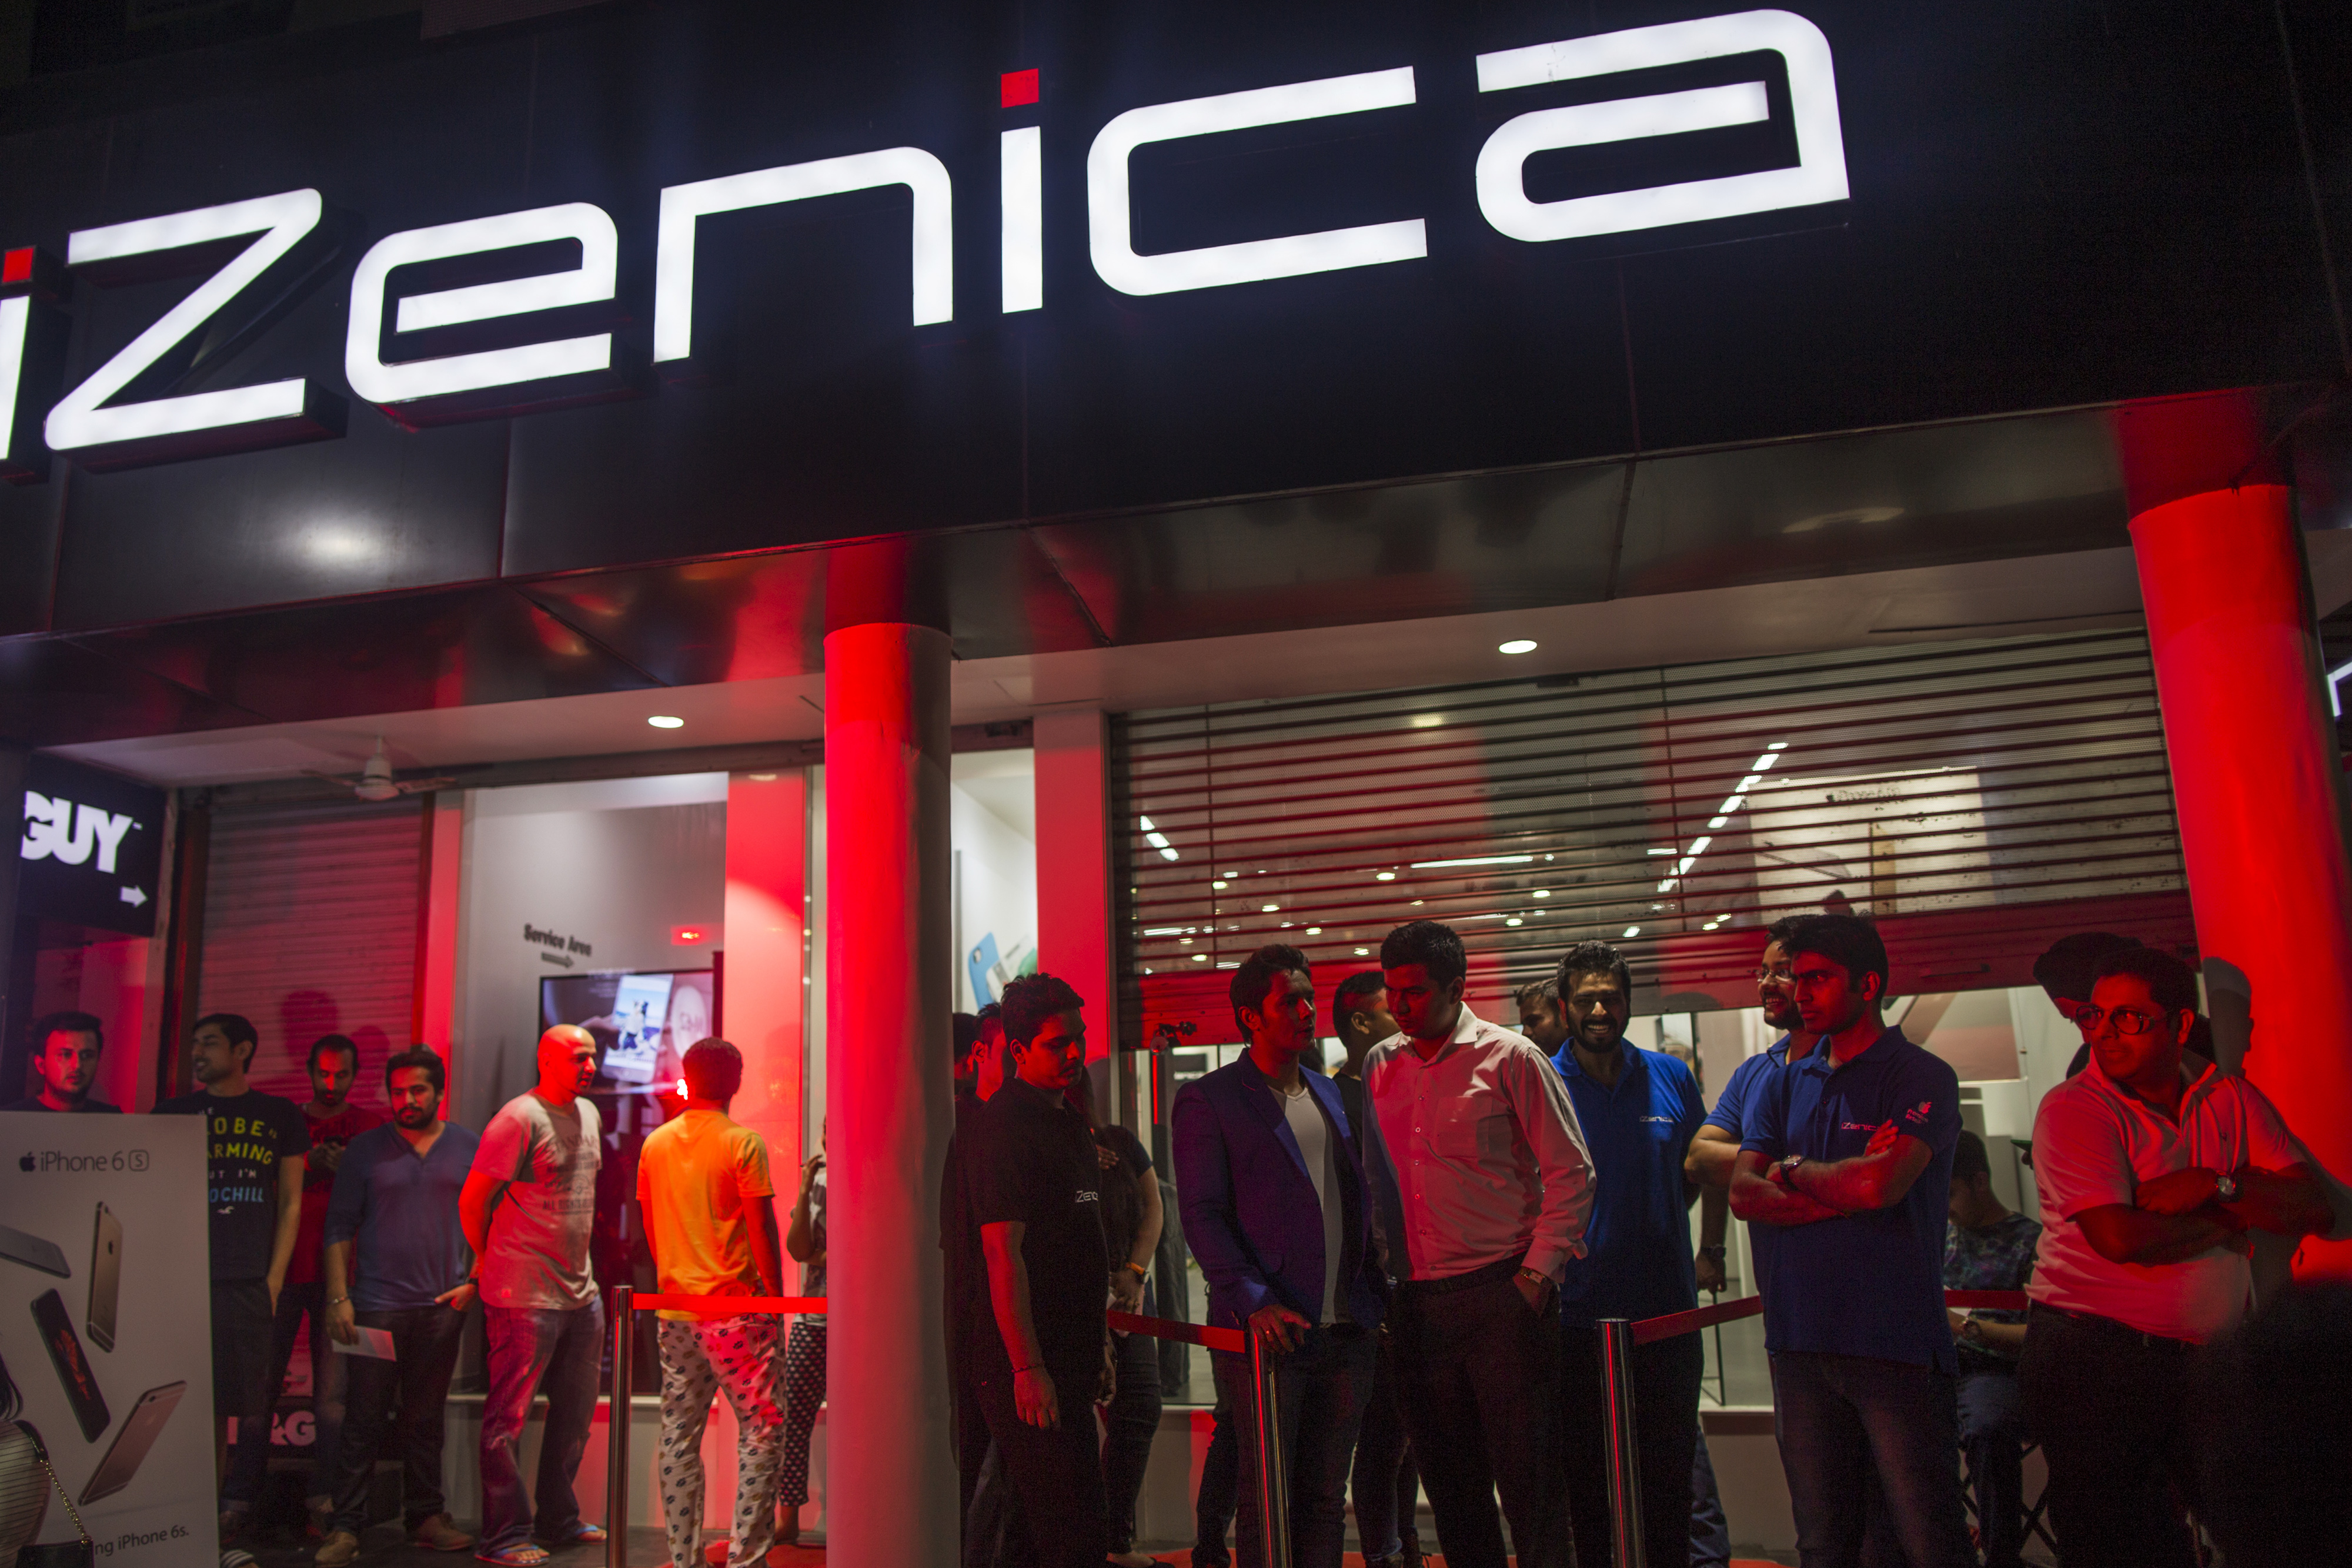 First Purchases Of The Apple IPhone 6s At An Izenica Store As New IPhones Are Released In India